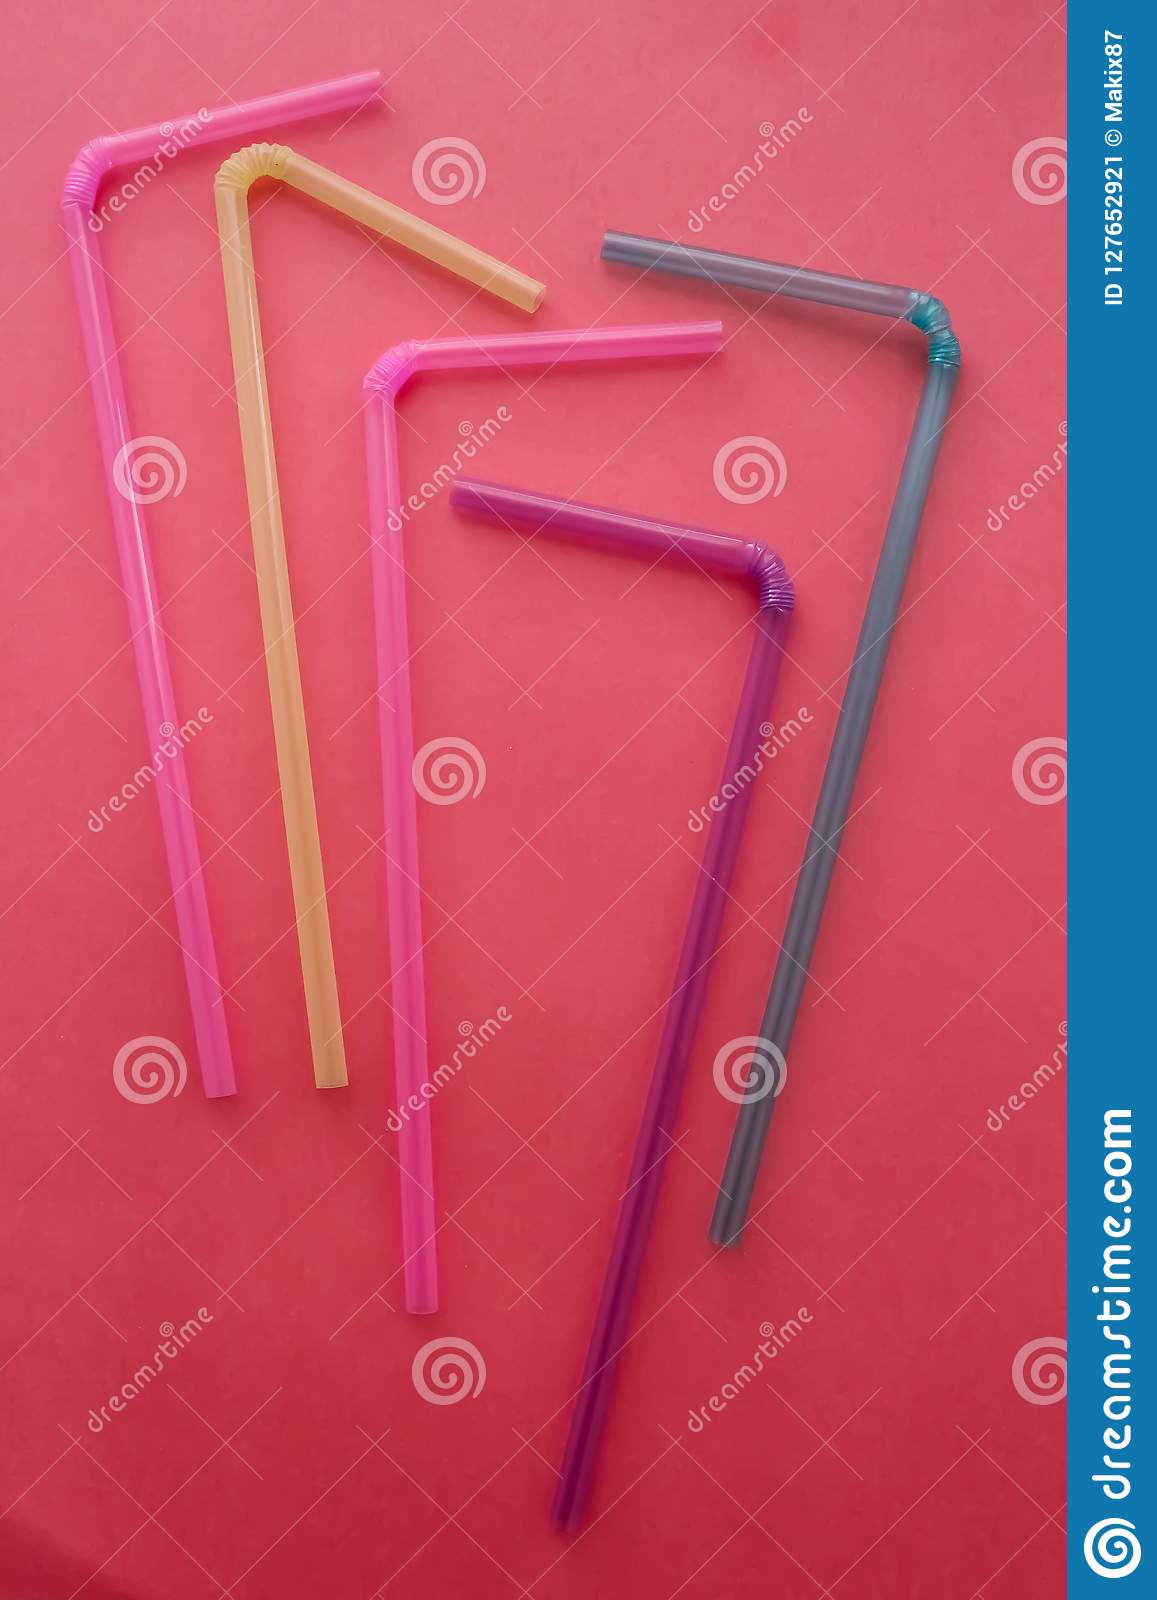 Colored tubes for drinks